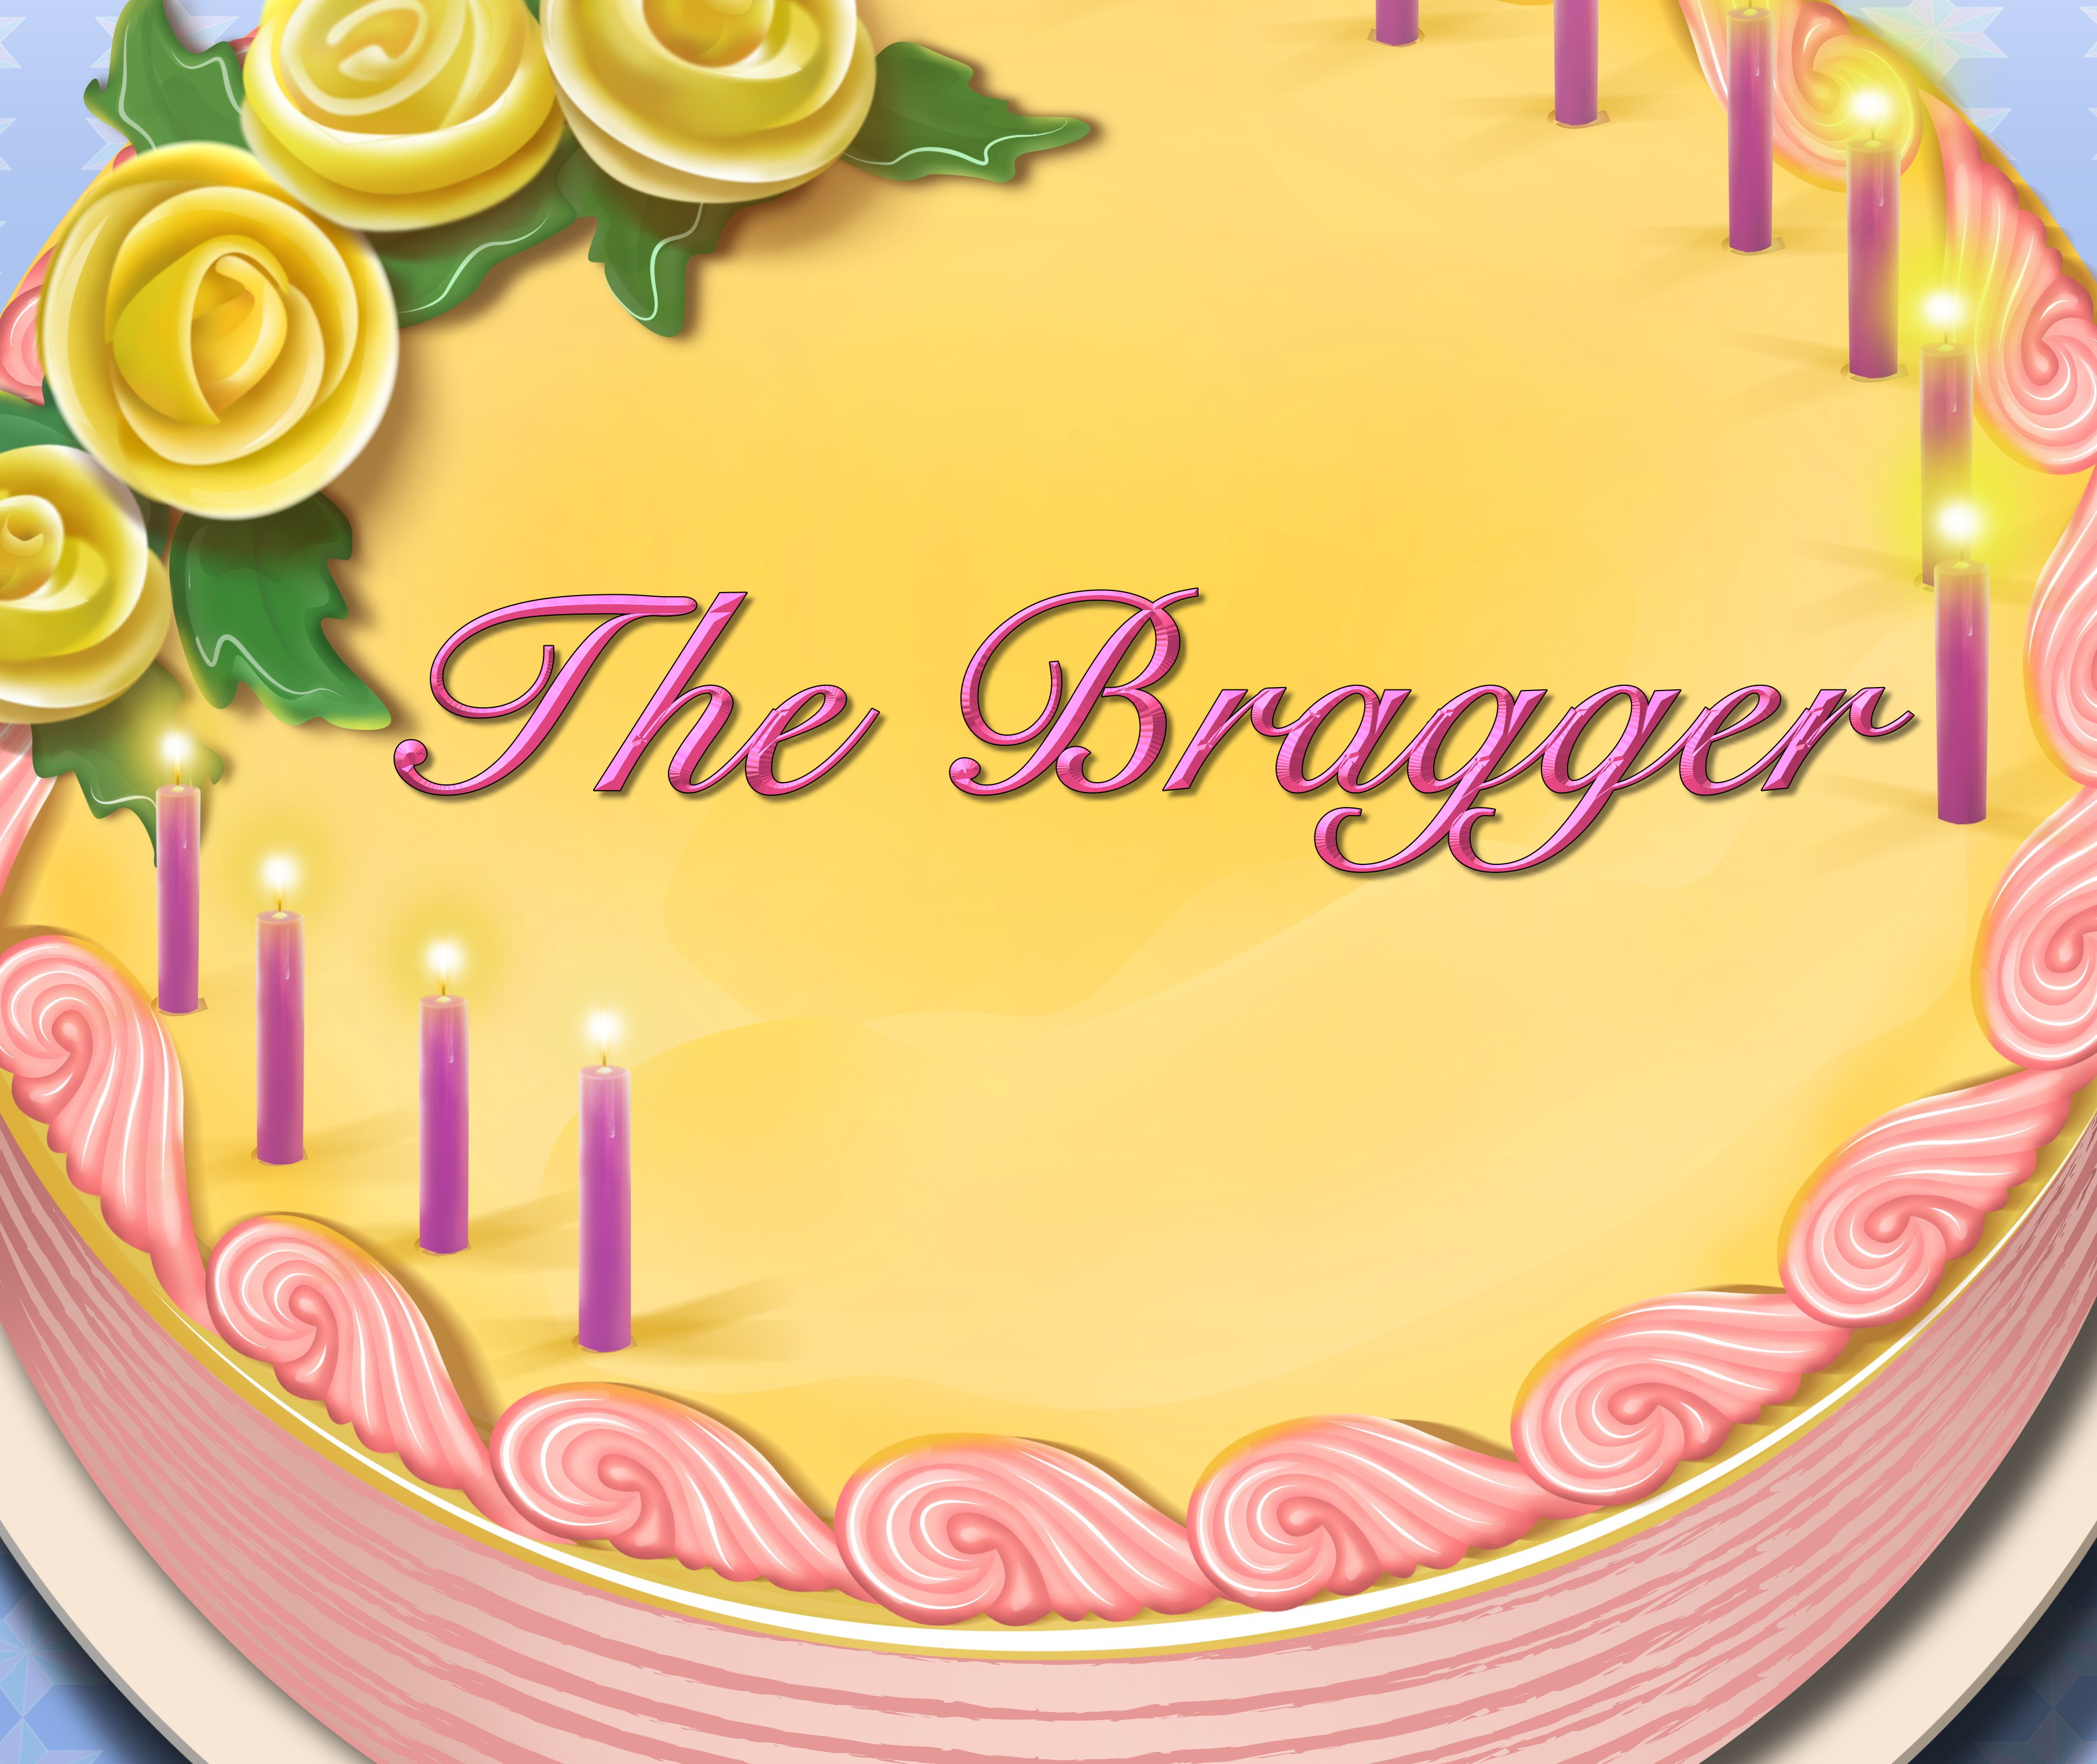 The Bragger Birthday Cake